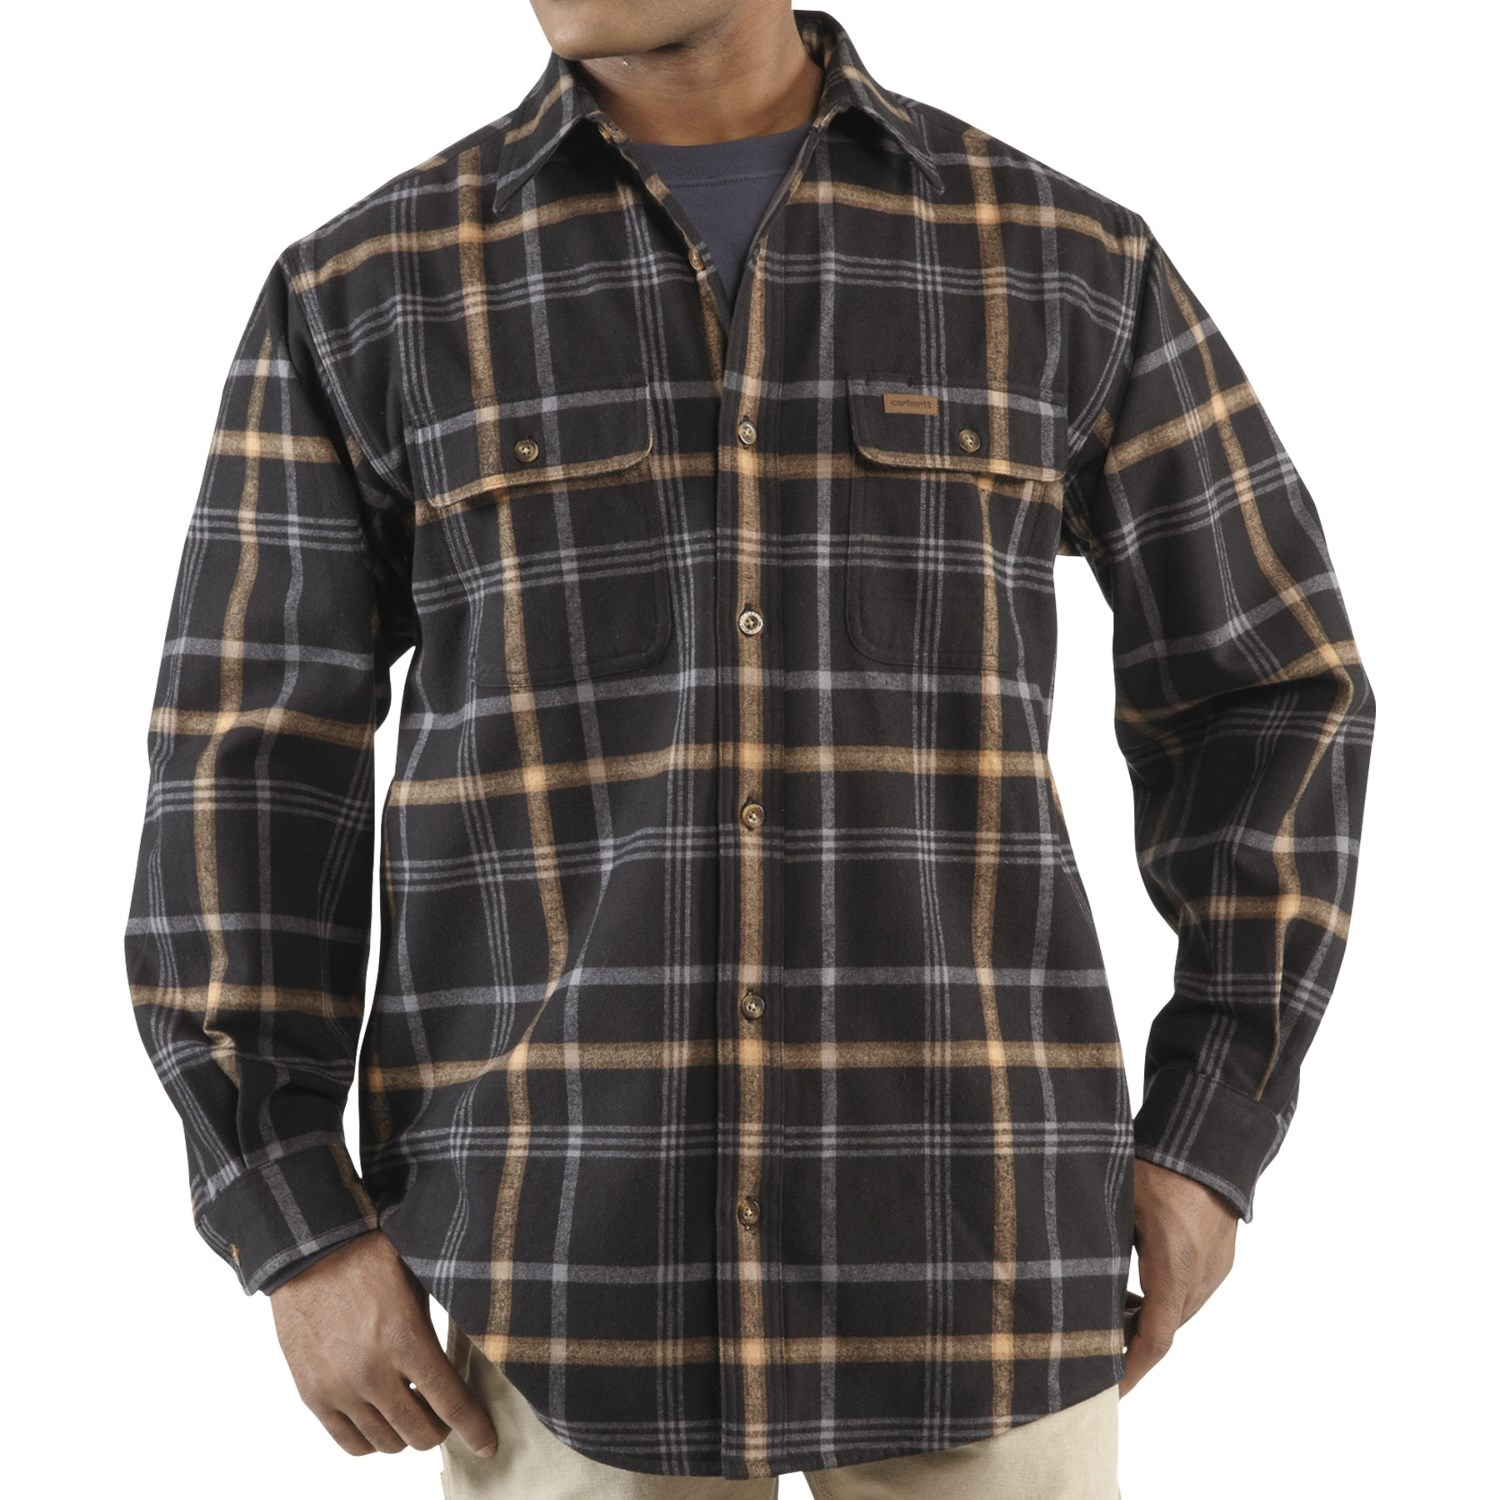 carhartt youngstown flannel shirt jacket for tall men 5623p